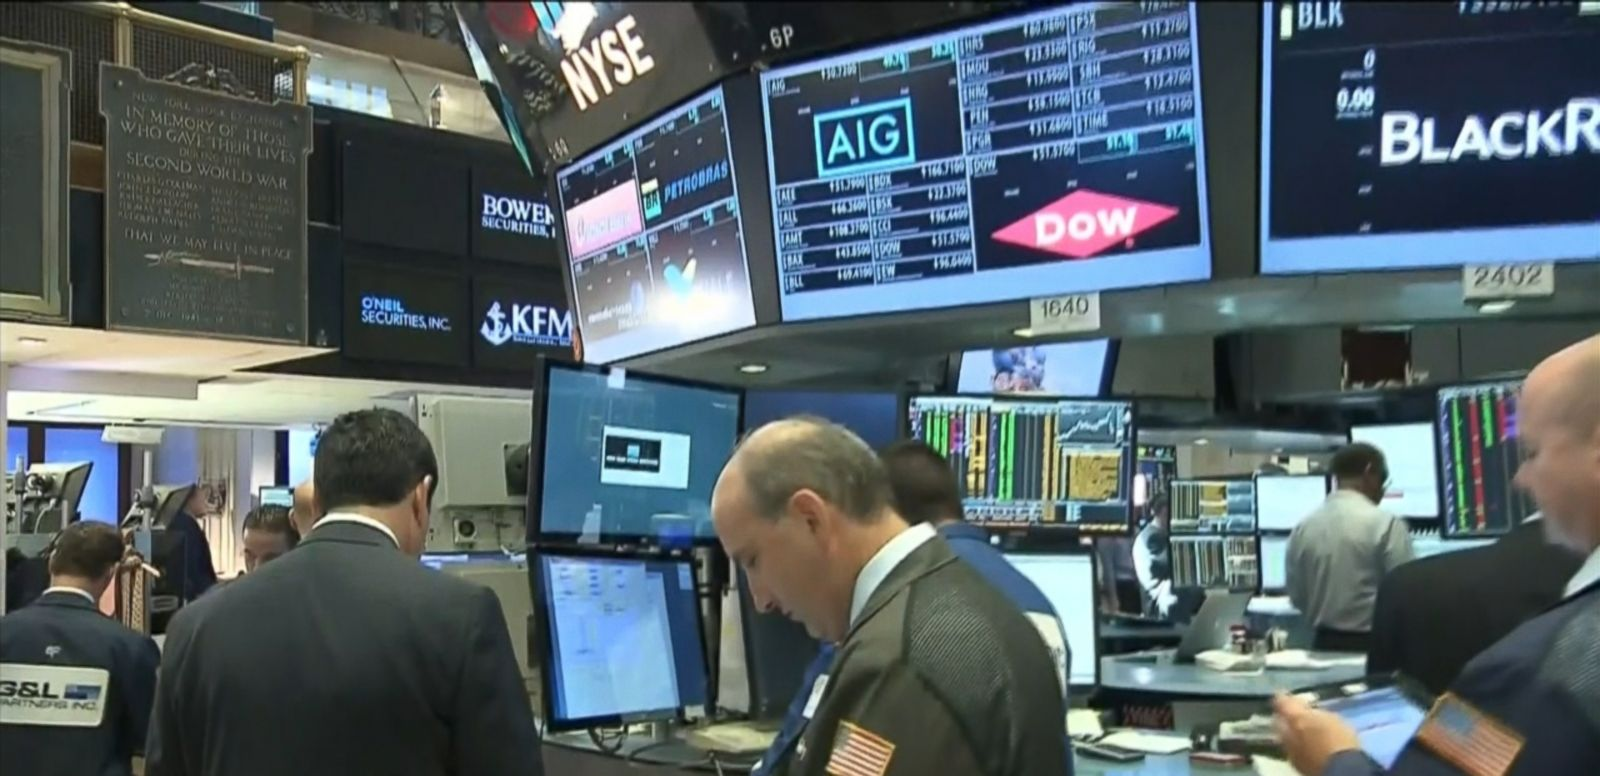 VIDEO: U.S. stocks continued their downward slide this morning, as investors reacted to more potential fallout from Britain's vote to withdraw from the European Union last week.